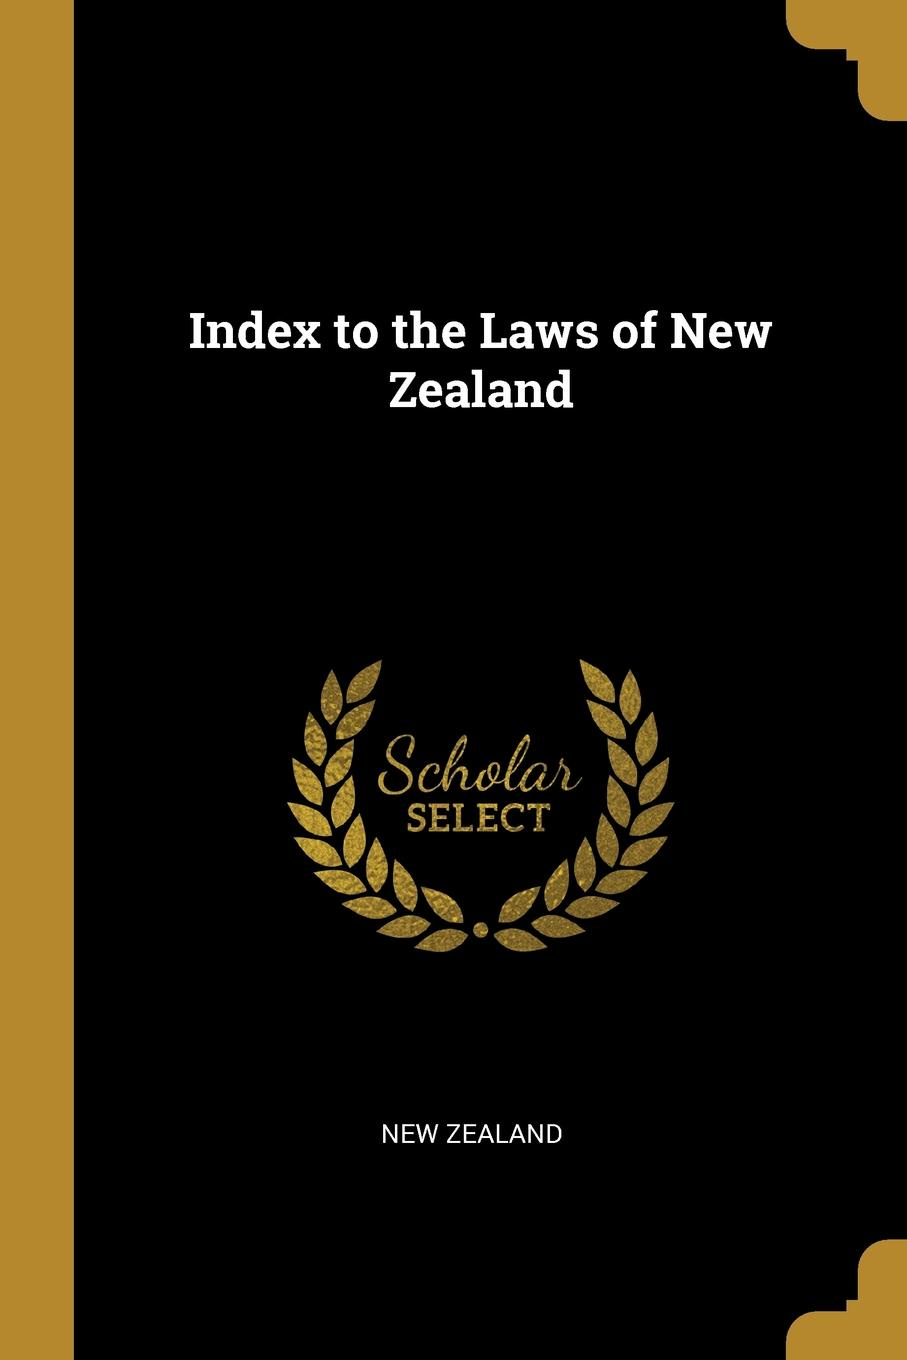 New Zealand Index to the Laws of New Zealand